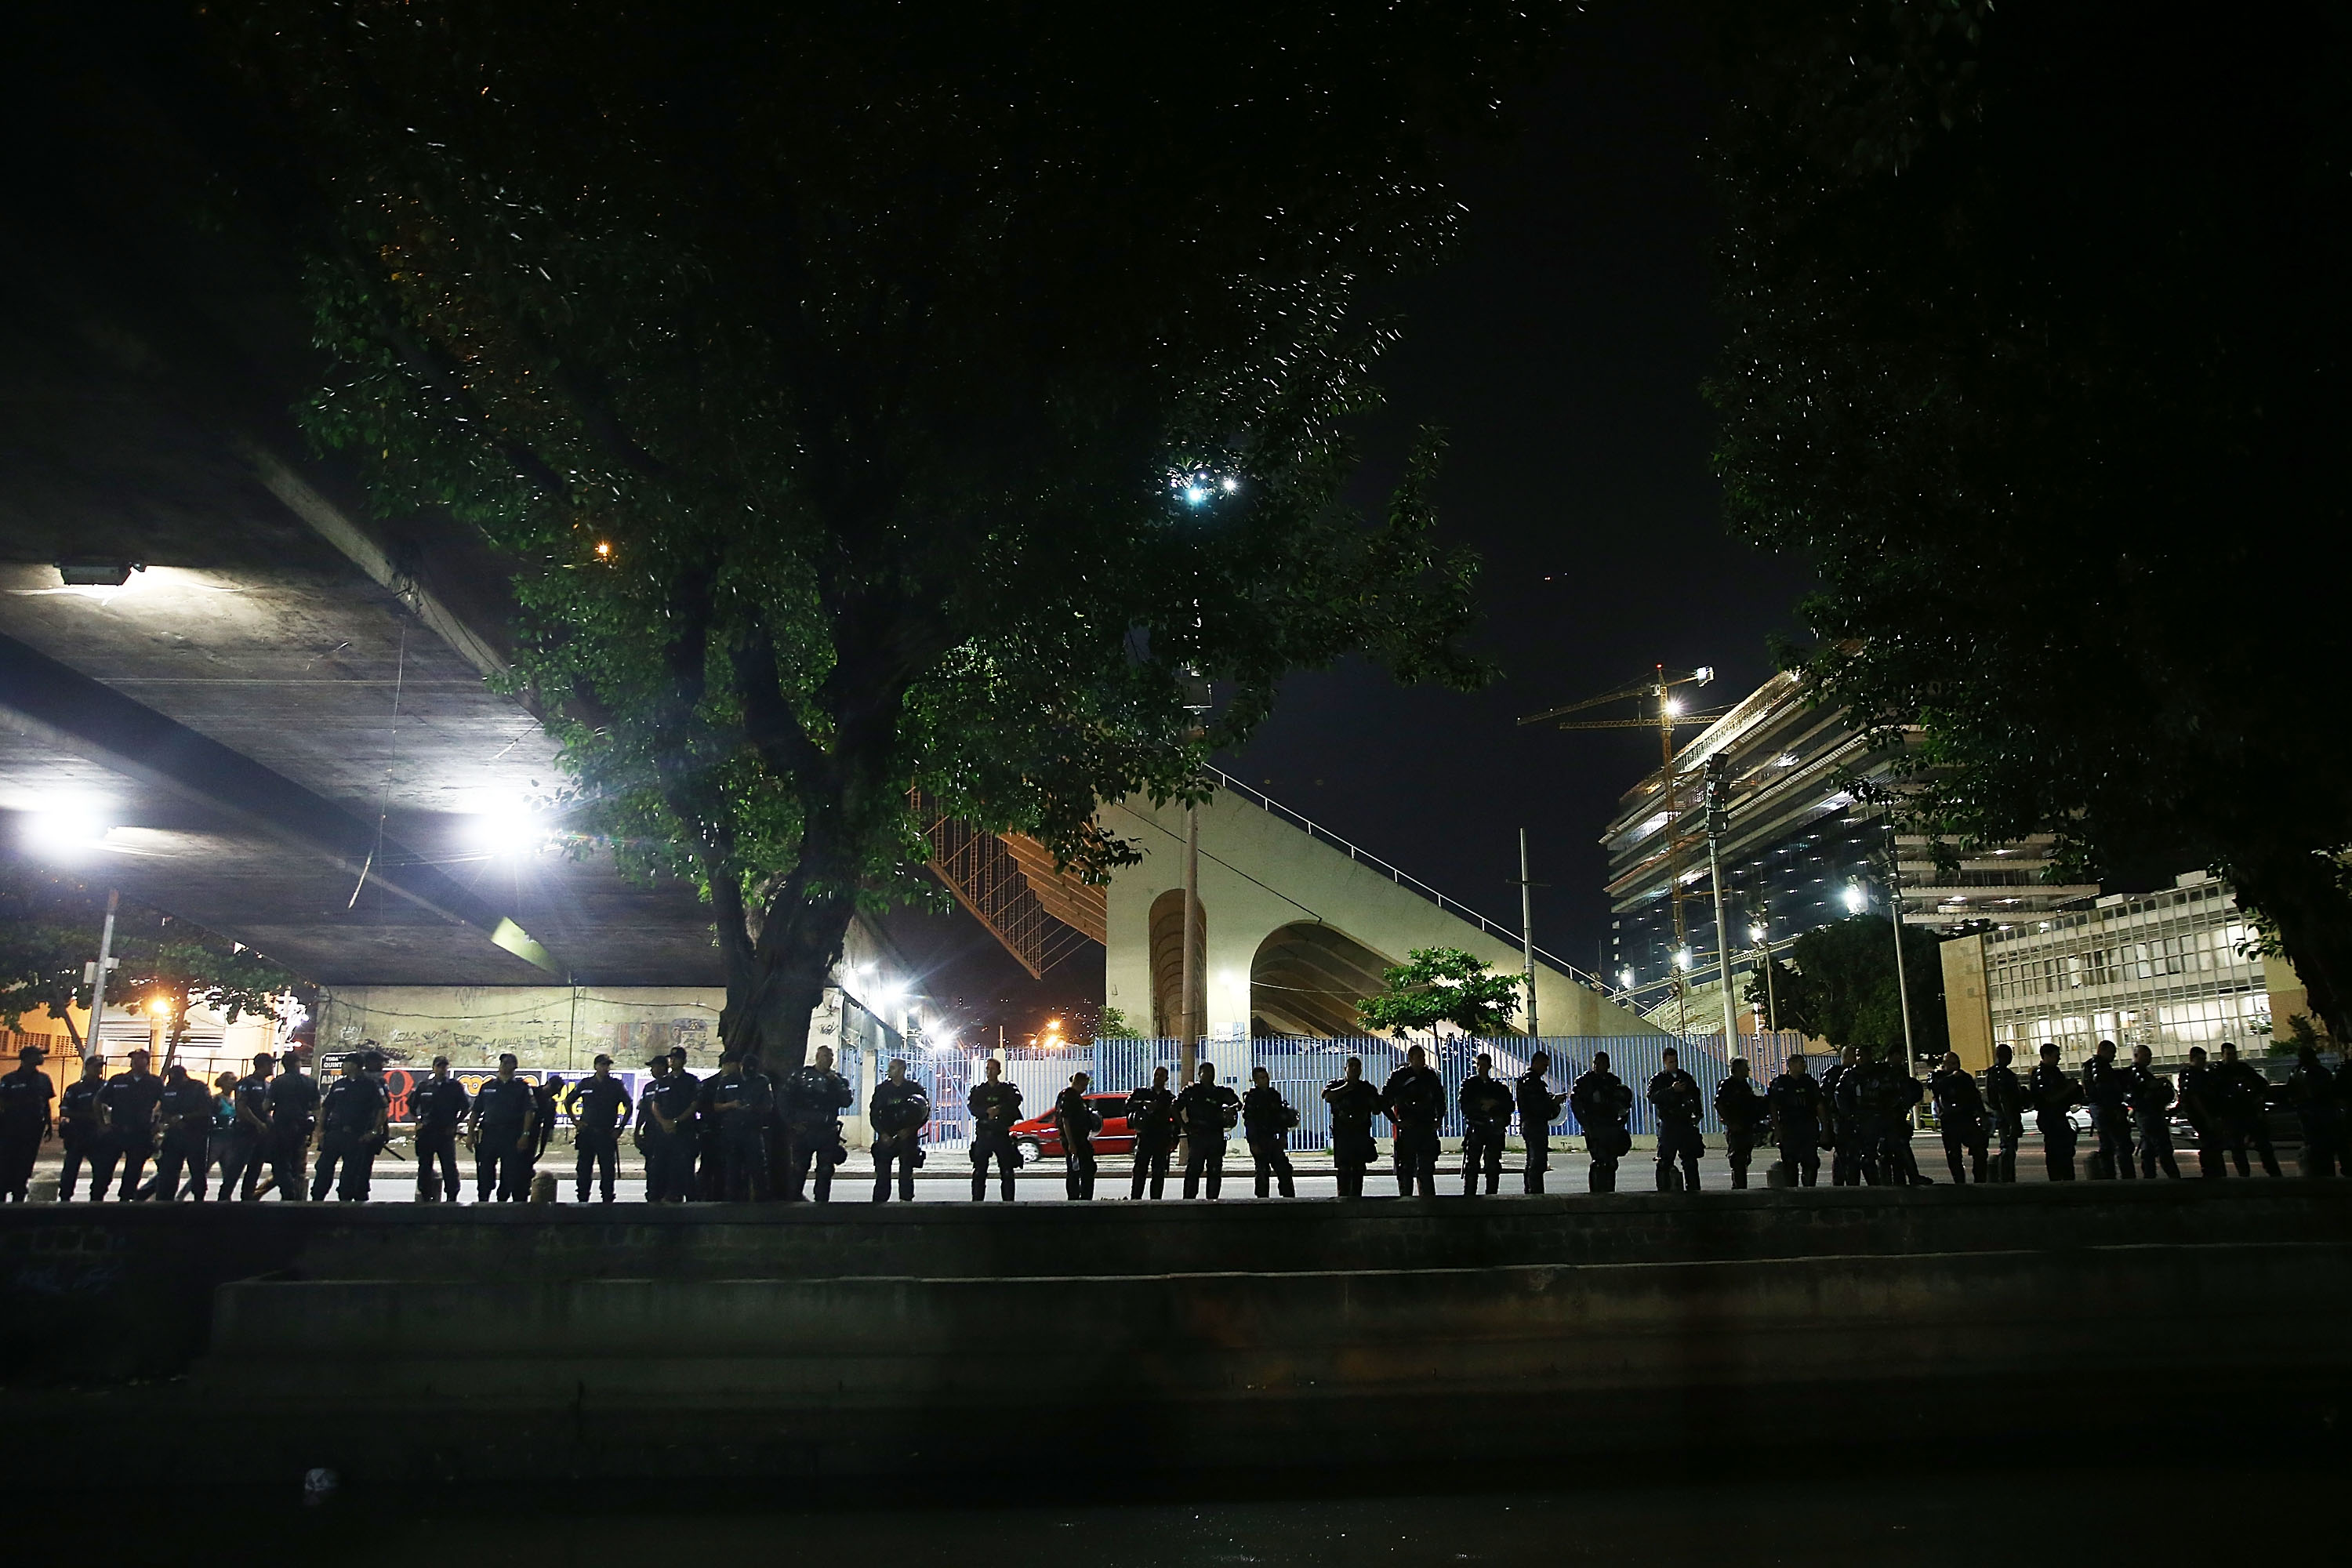 Military police keep watch a protest against the upcoming 2014 World Cup on May 15, 2014 in Rio de Janeiro.